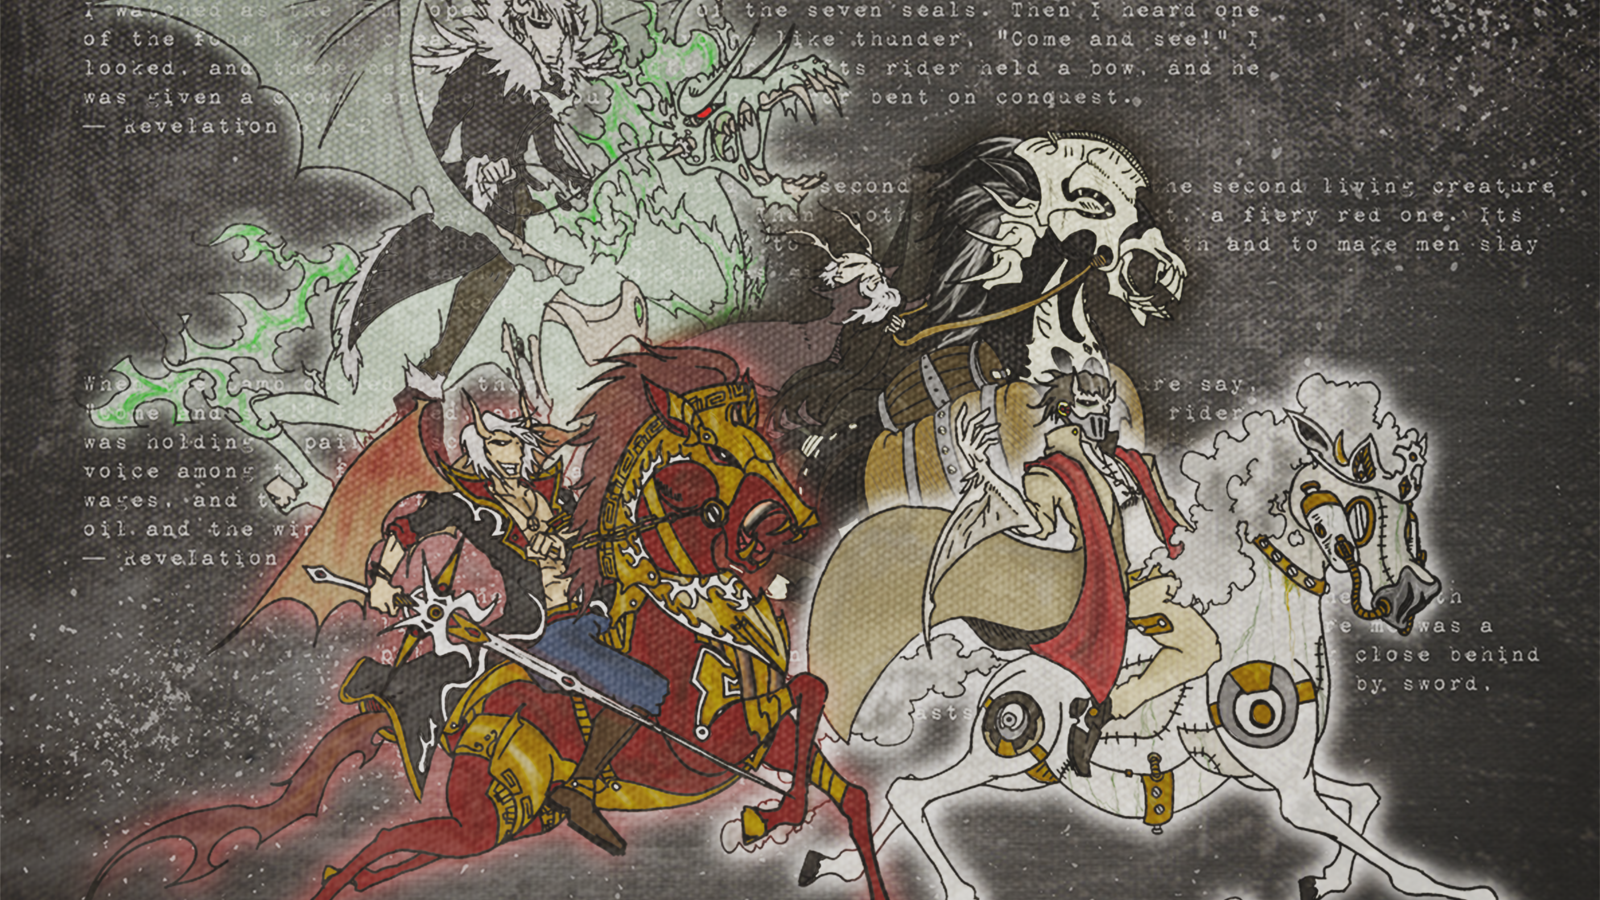 Free Download Four Horsemen Of The Apocalypse Wallpaper The Four